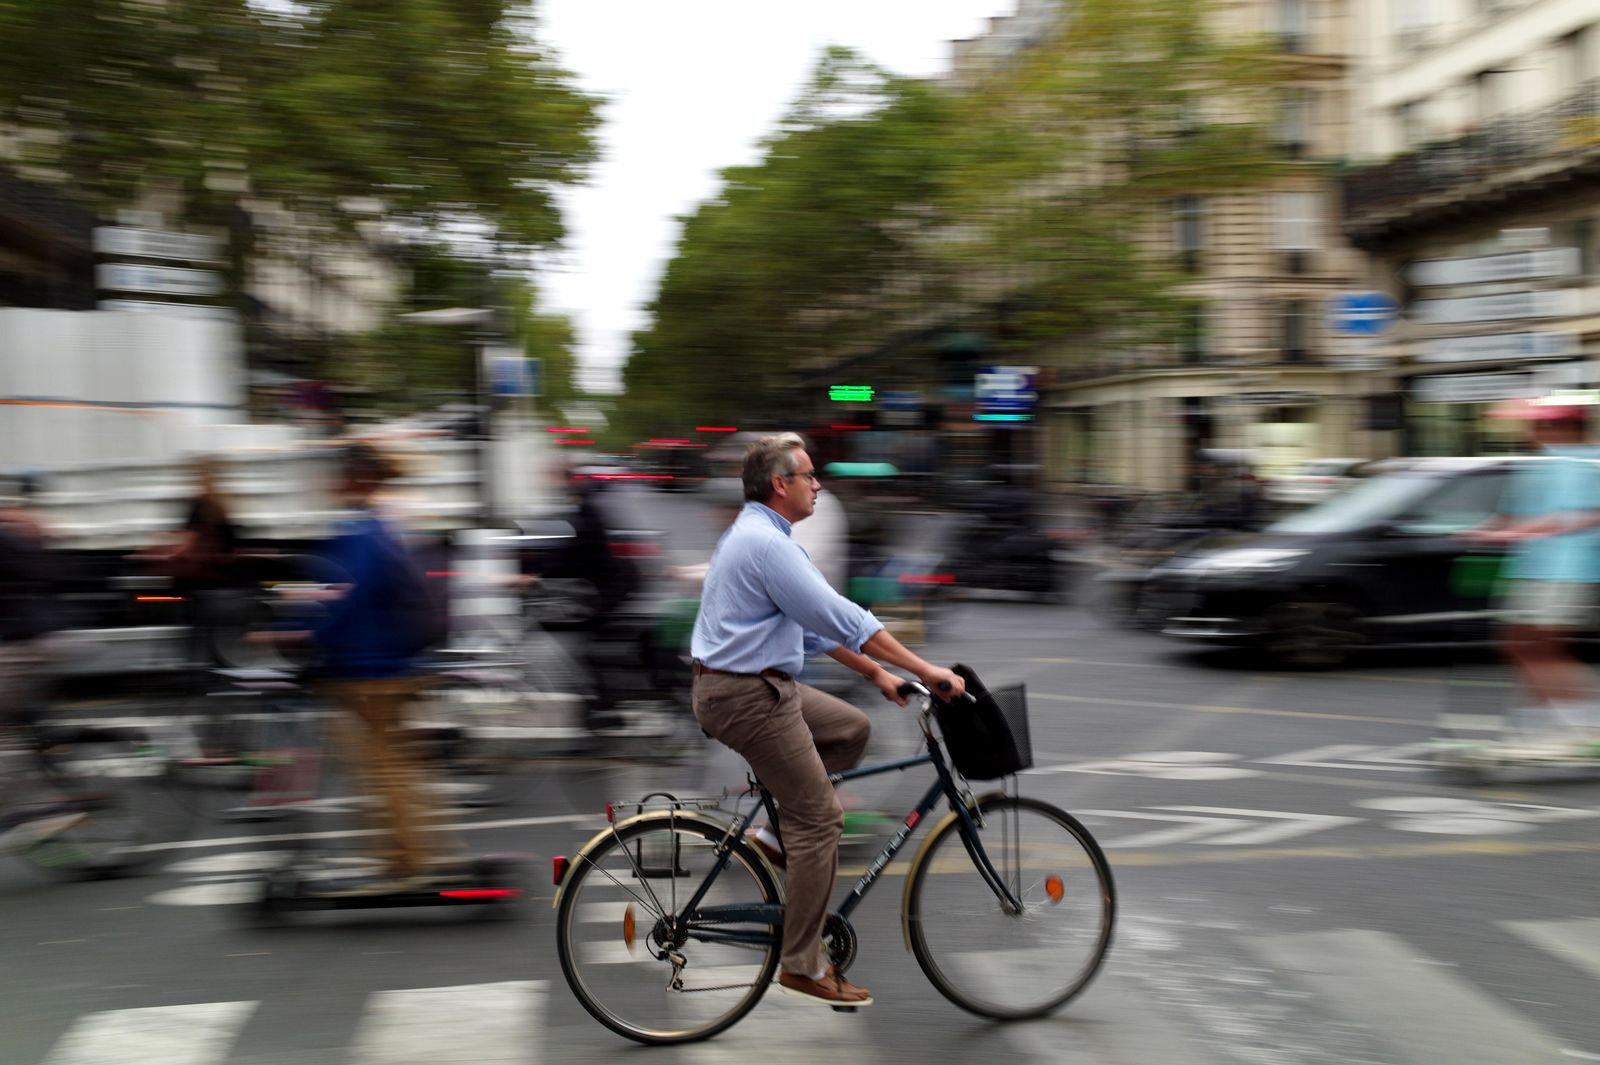 A man rides a bicycle in a street of Paris, Friday, Sept. 13, 2019. Paris metro warns over major strike, transport chaos Friday. (AP Photo/Thibault Camus)